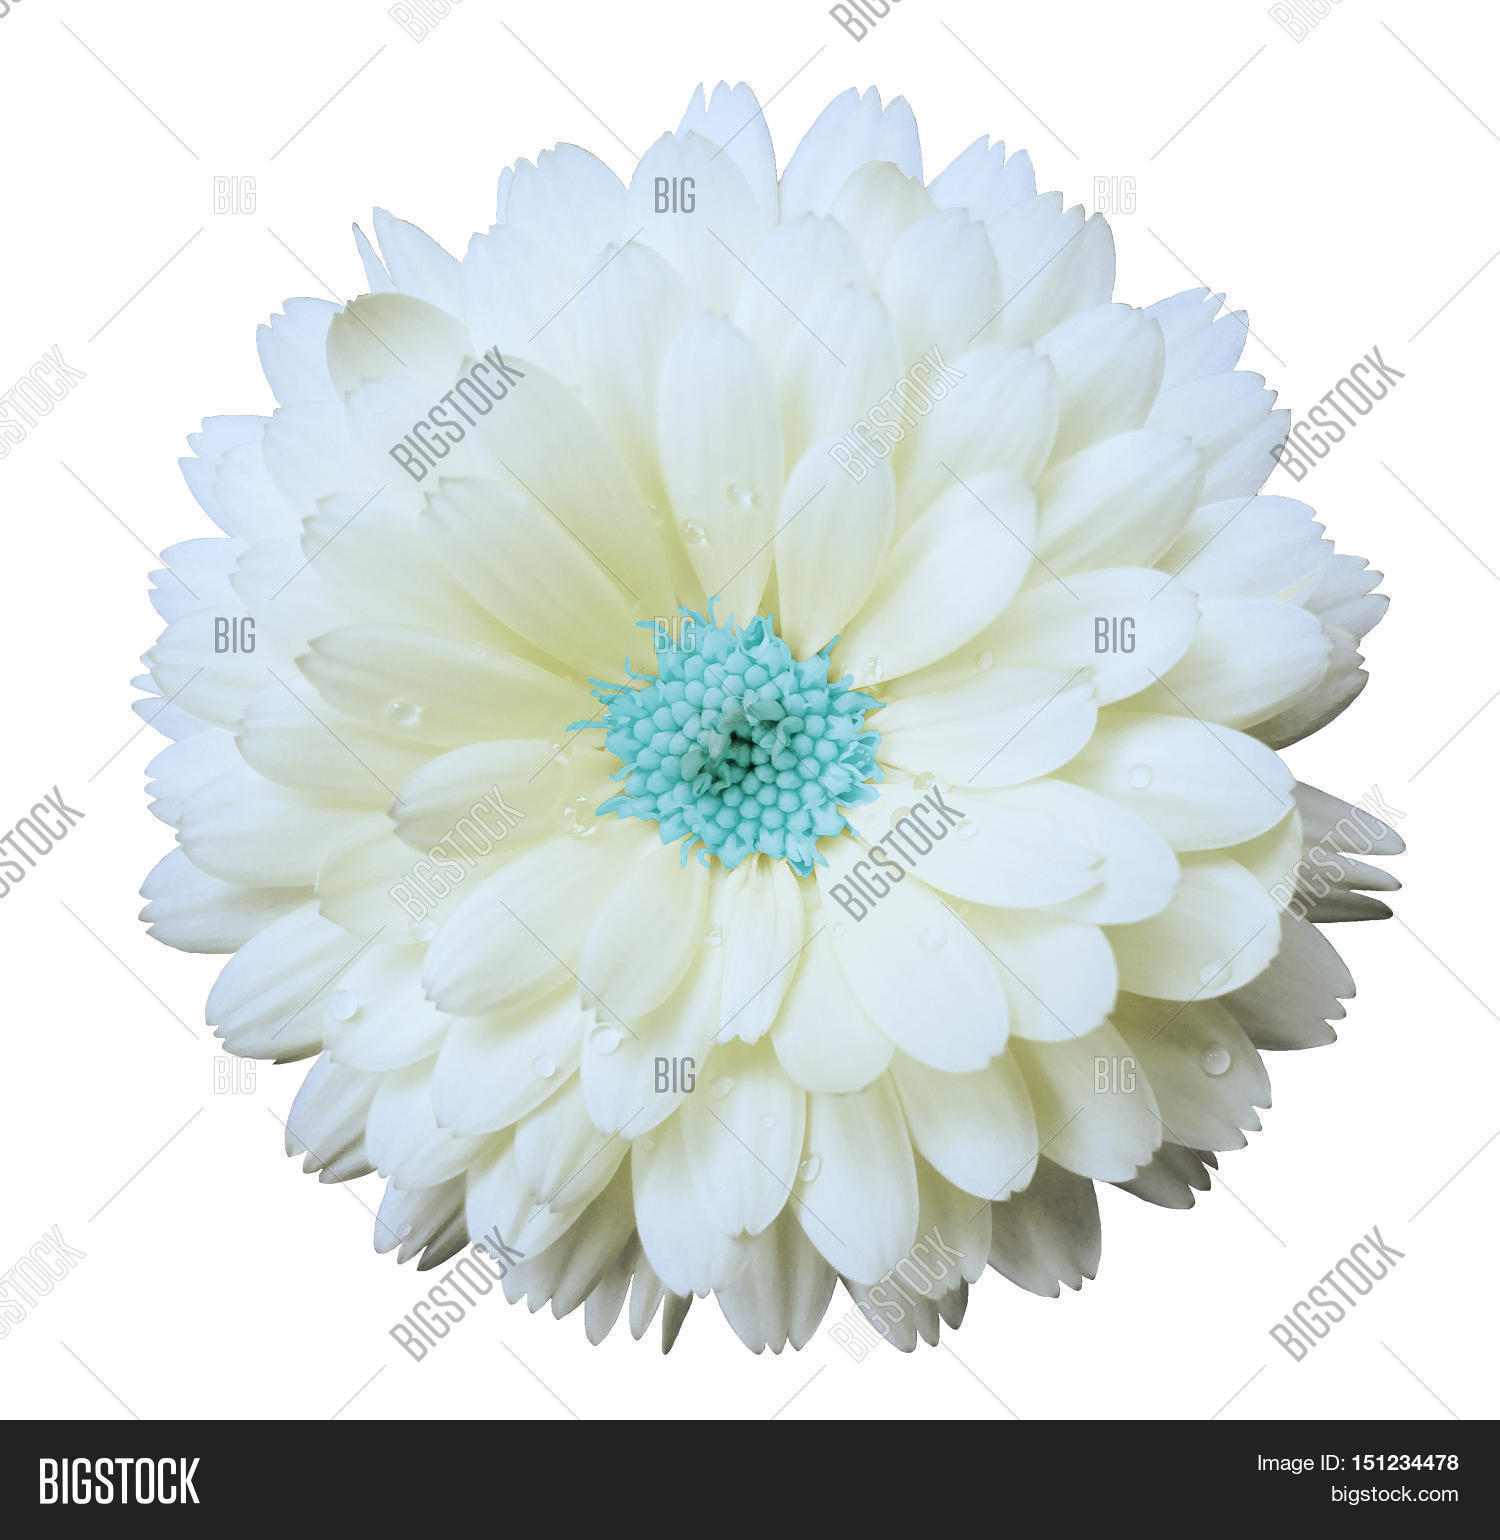 White flower calendula image photo free trial bigstock white flower calendula white isolated background with clipping path nature closeup no shadows mightylinksfo